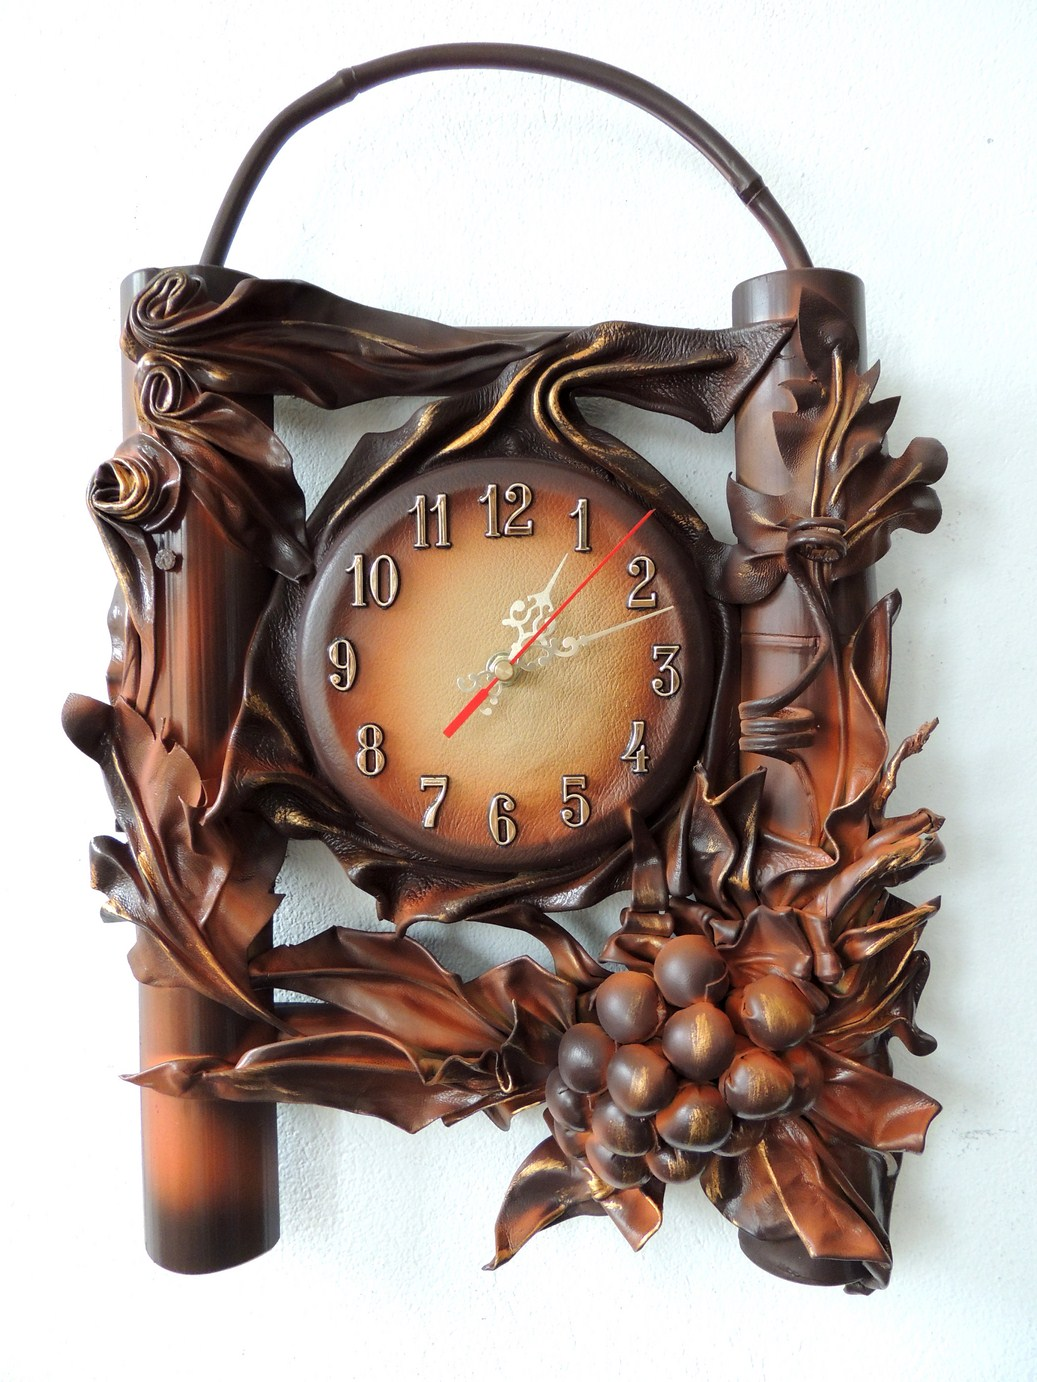 ZEGAR Z WINOGRONEM. NA WIELE OKAZJI. POLSKI PRODUCENT.LEATHER CLOCK. POLISH PRODUCER. FOR MANY OCCASIONS.